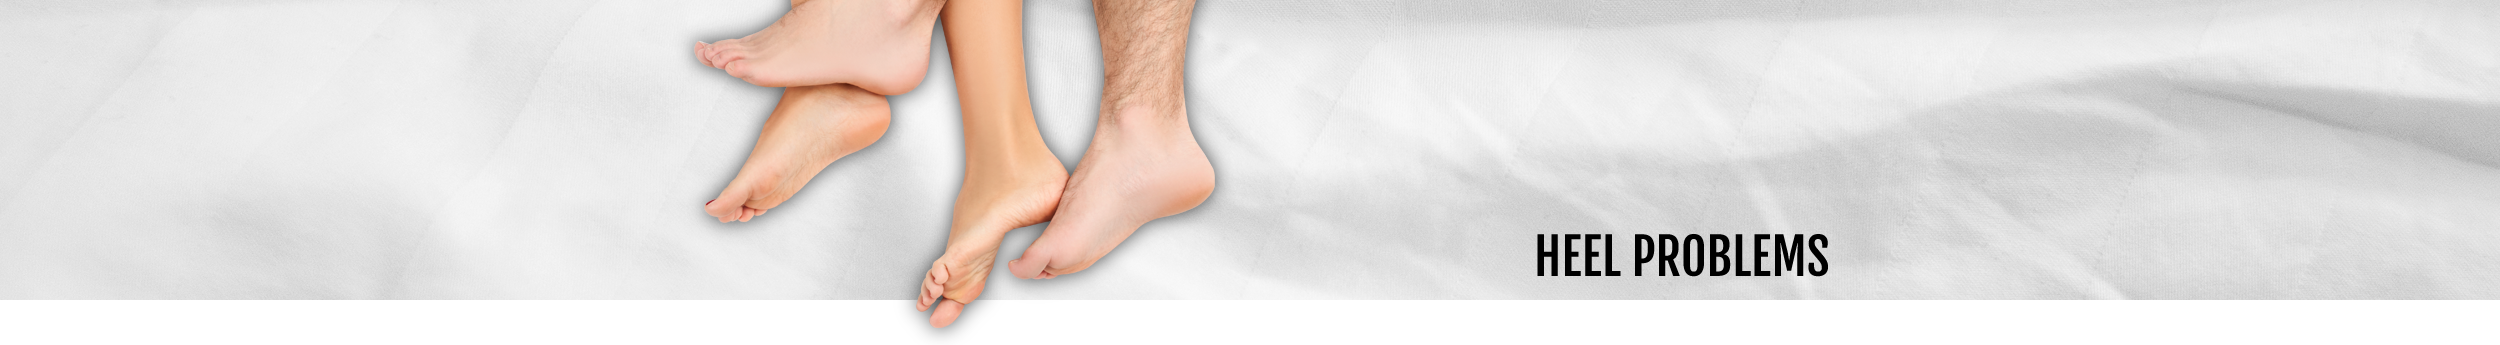 Heel problems header for the Walk IN Foot Clinic in central London